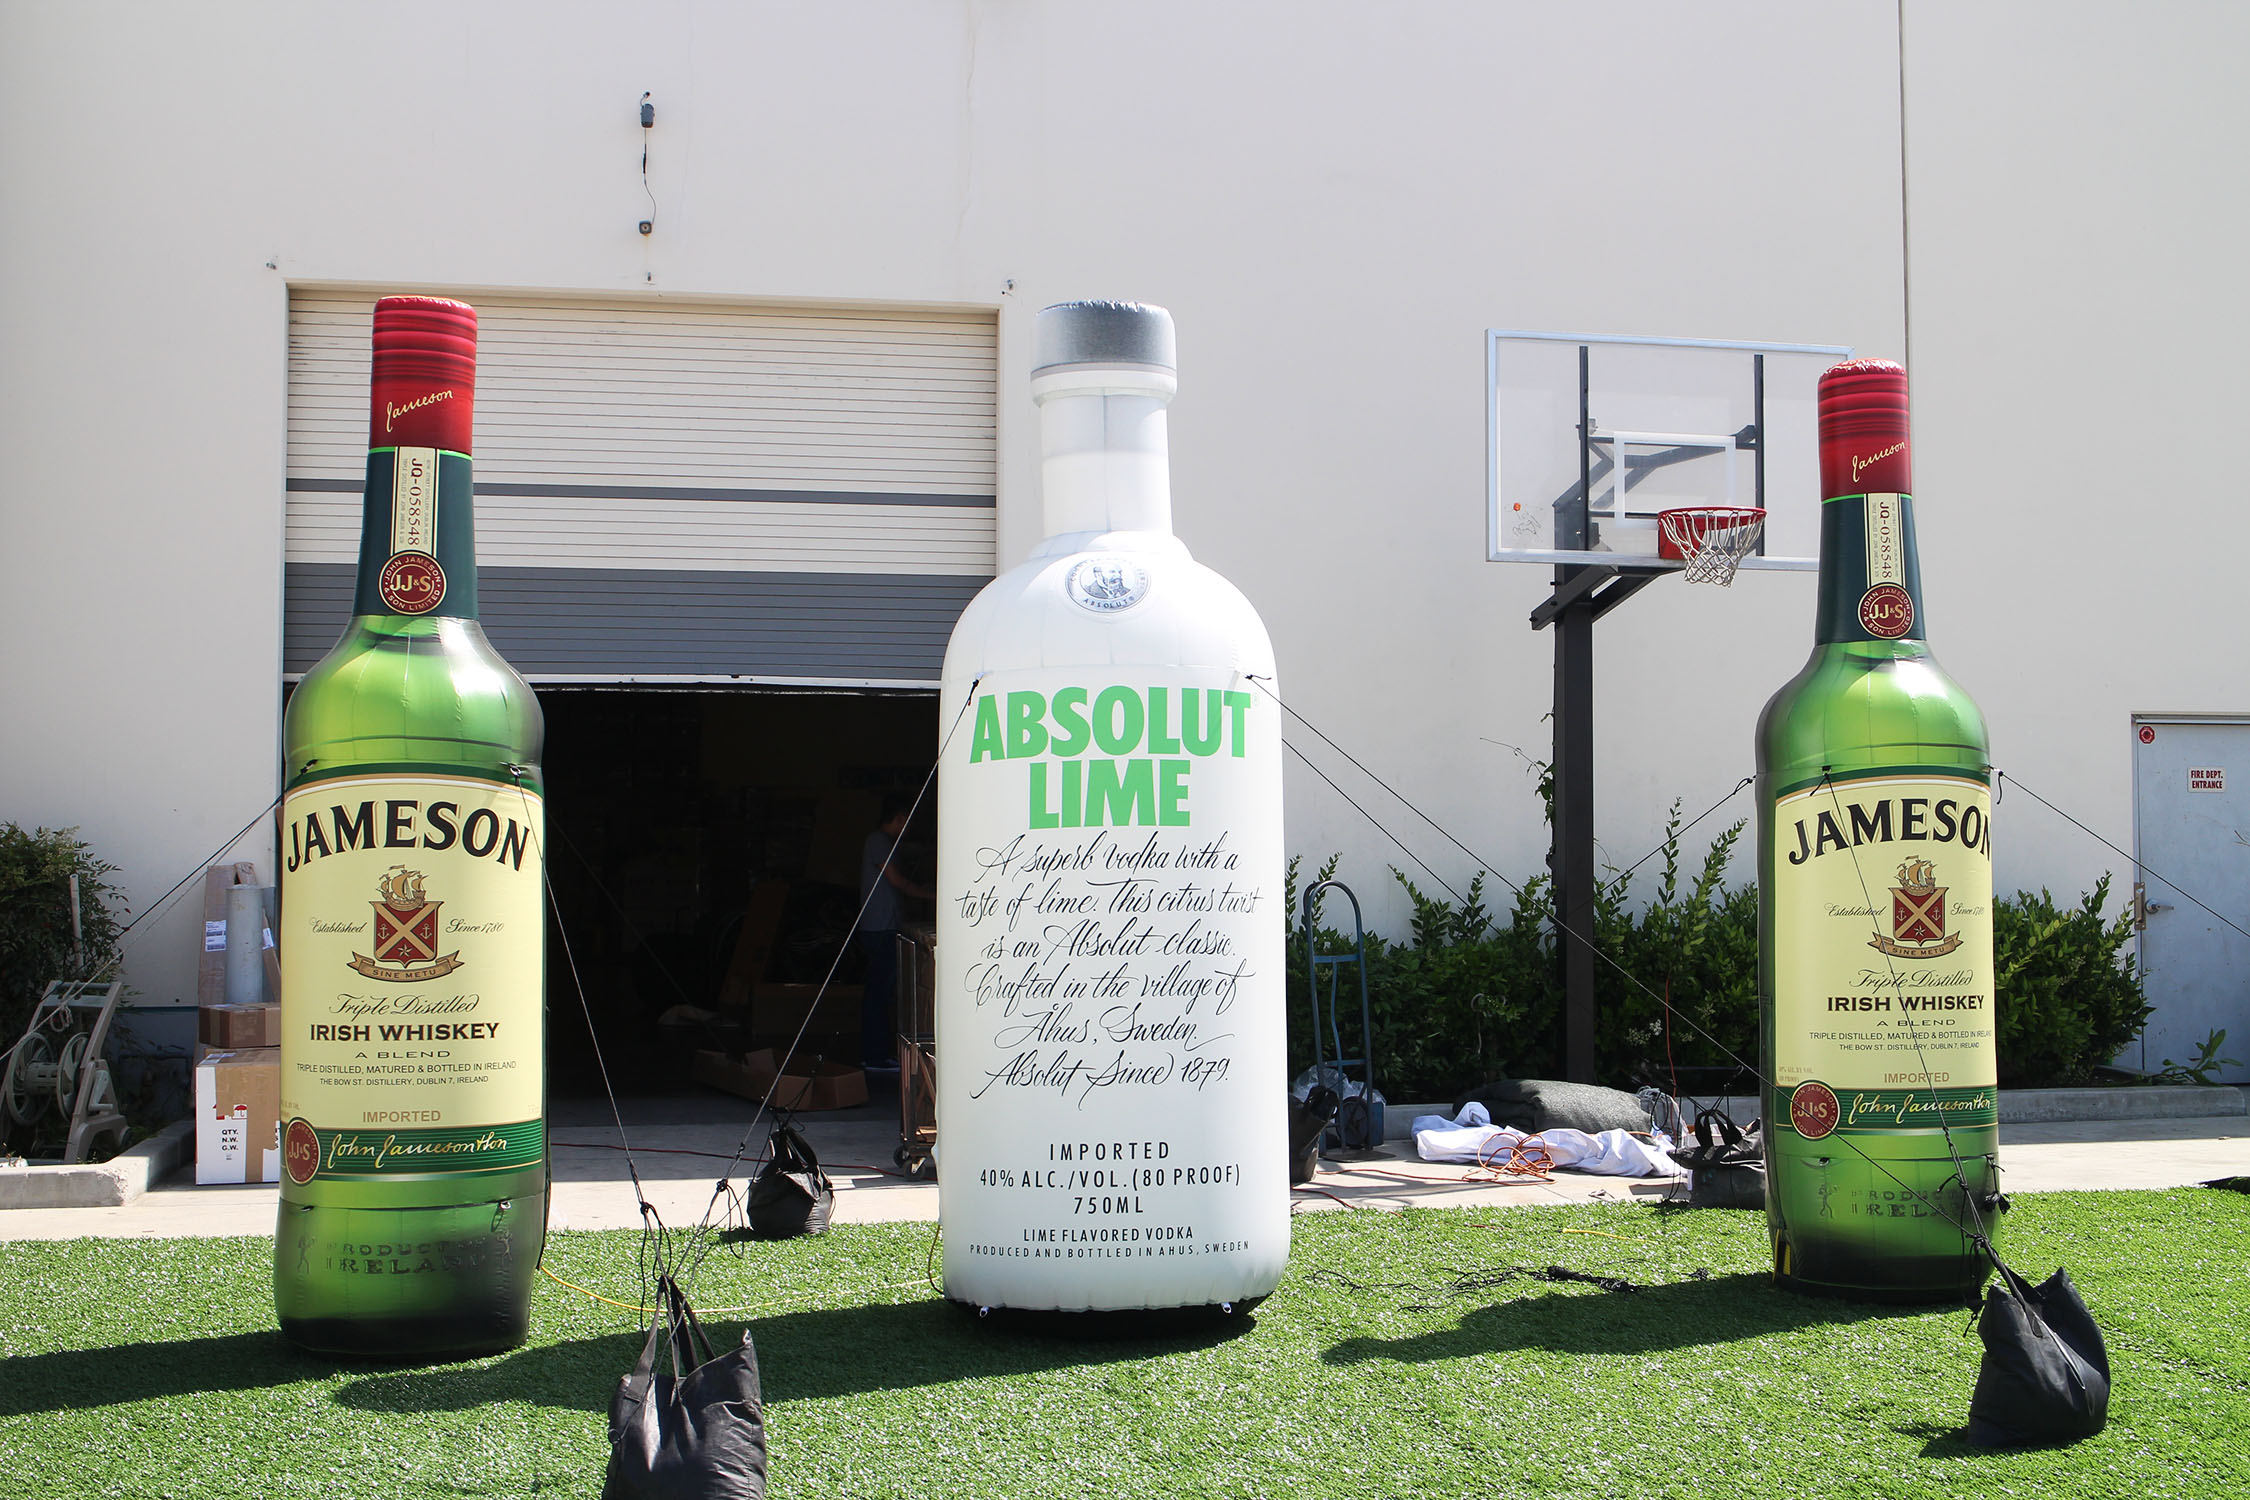 inflatable-liquor-bottles-on-faux-grass